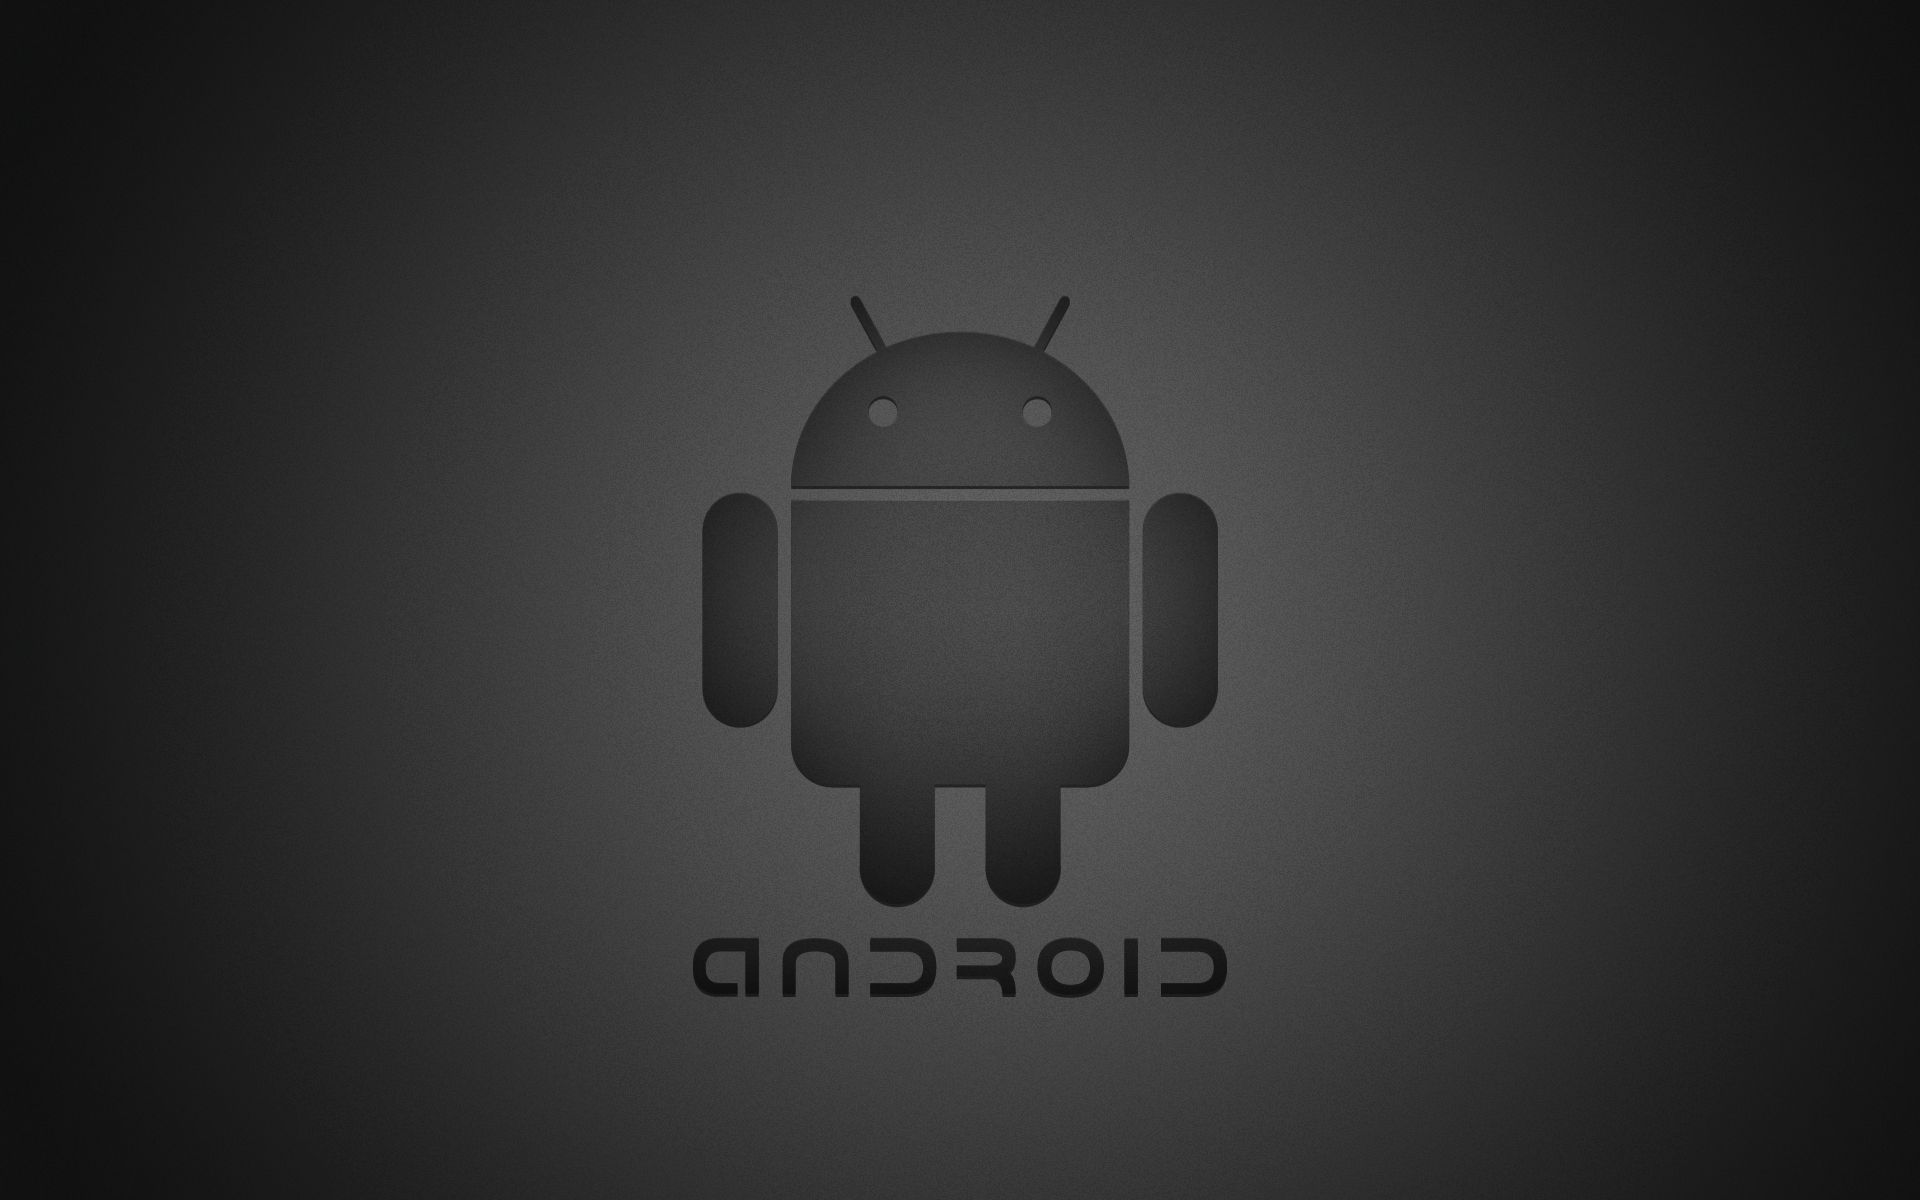 wallpaper android 005